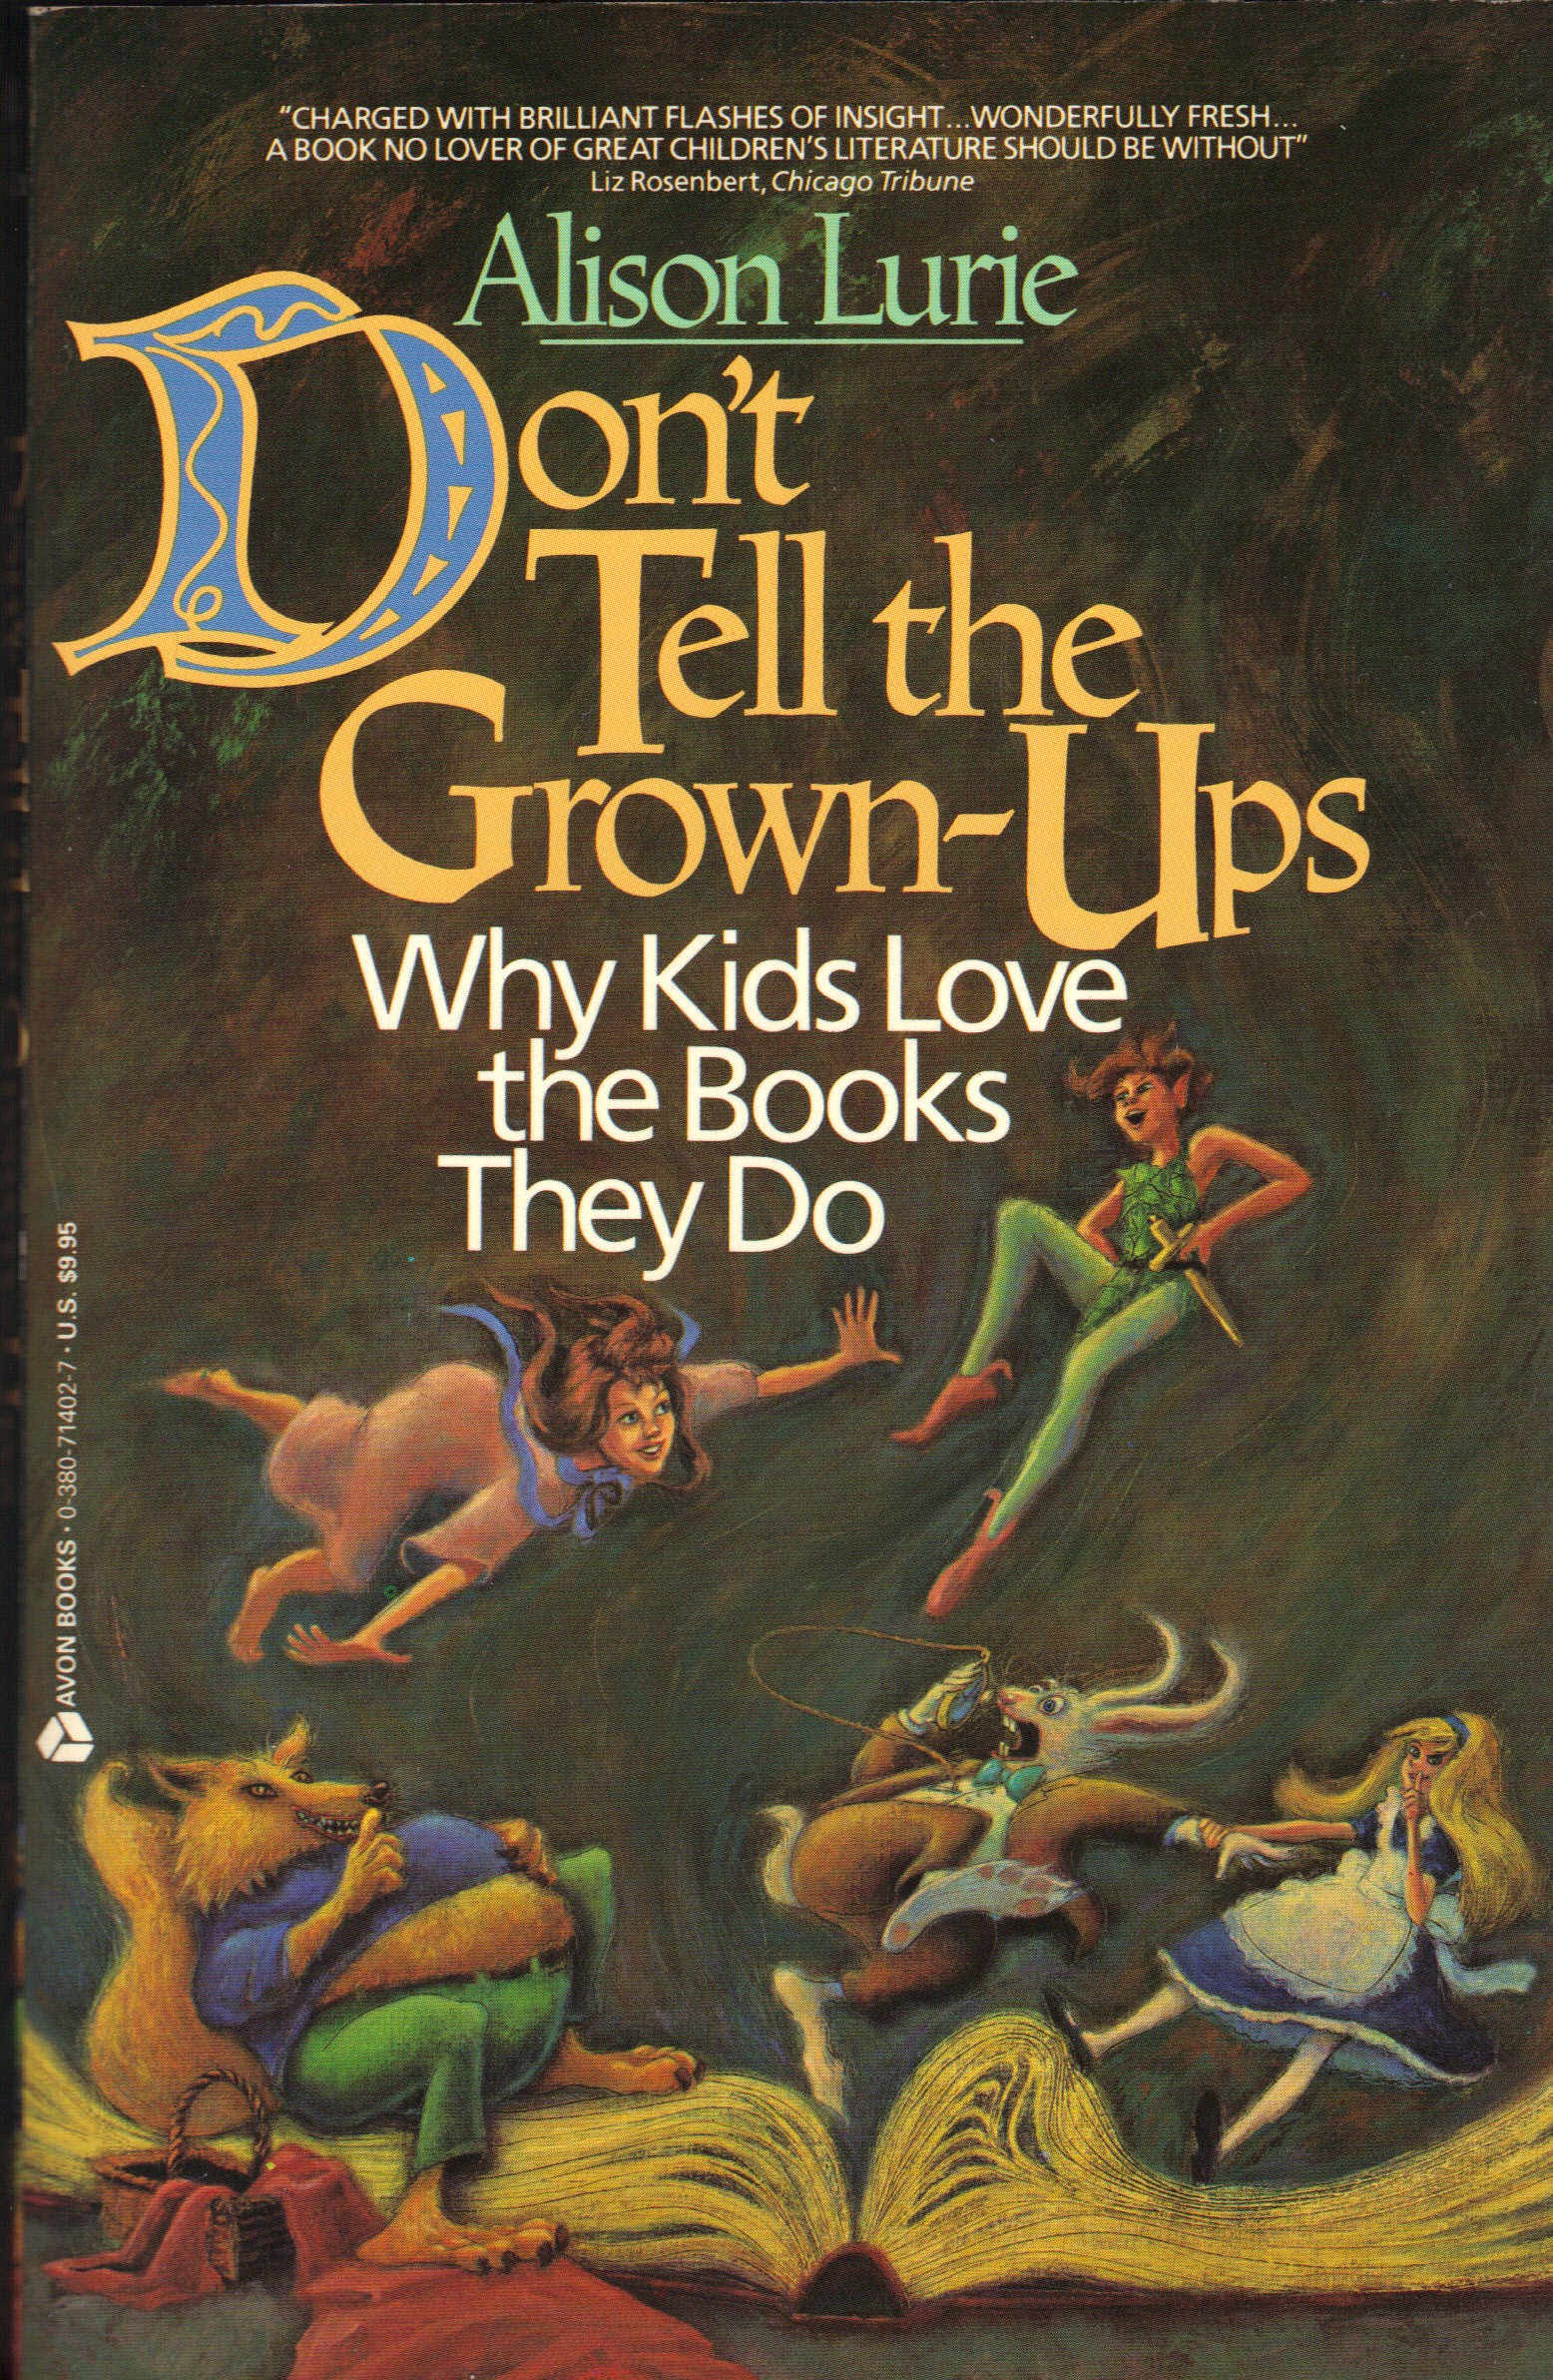 Image for DON'T TELL THE GROWN-UPS ~ Why Kids Love the Books They Do